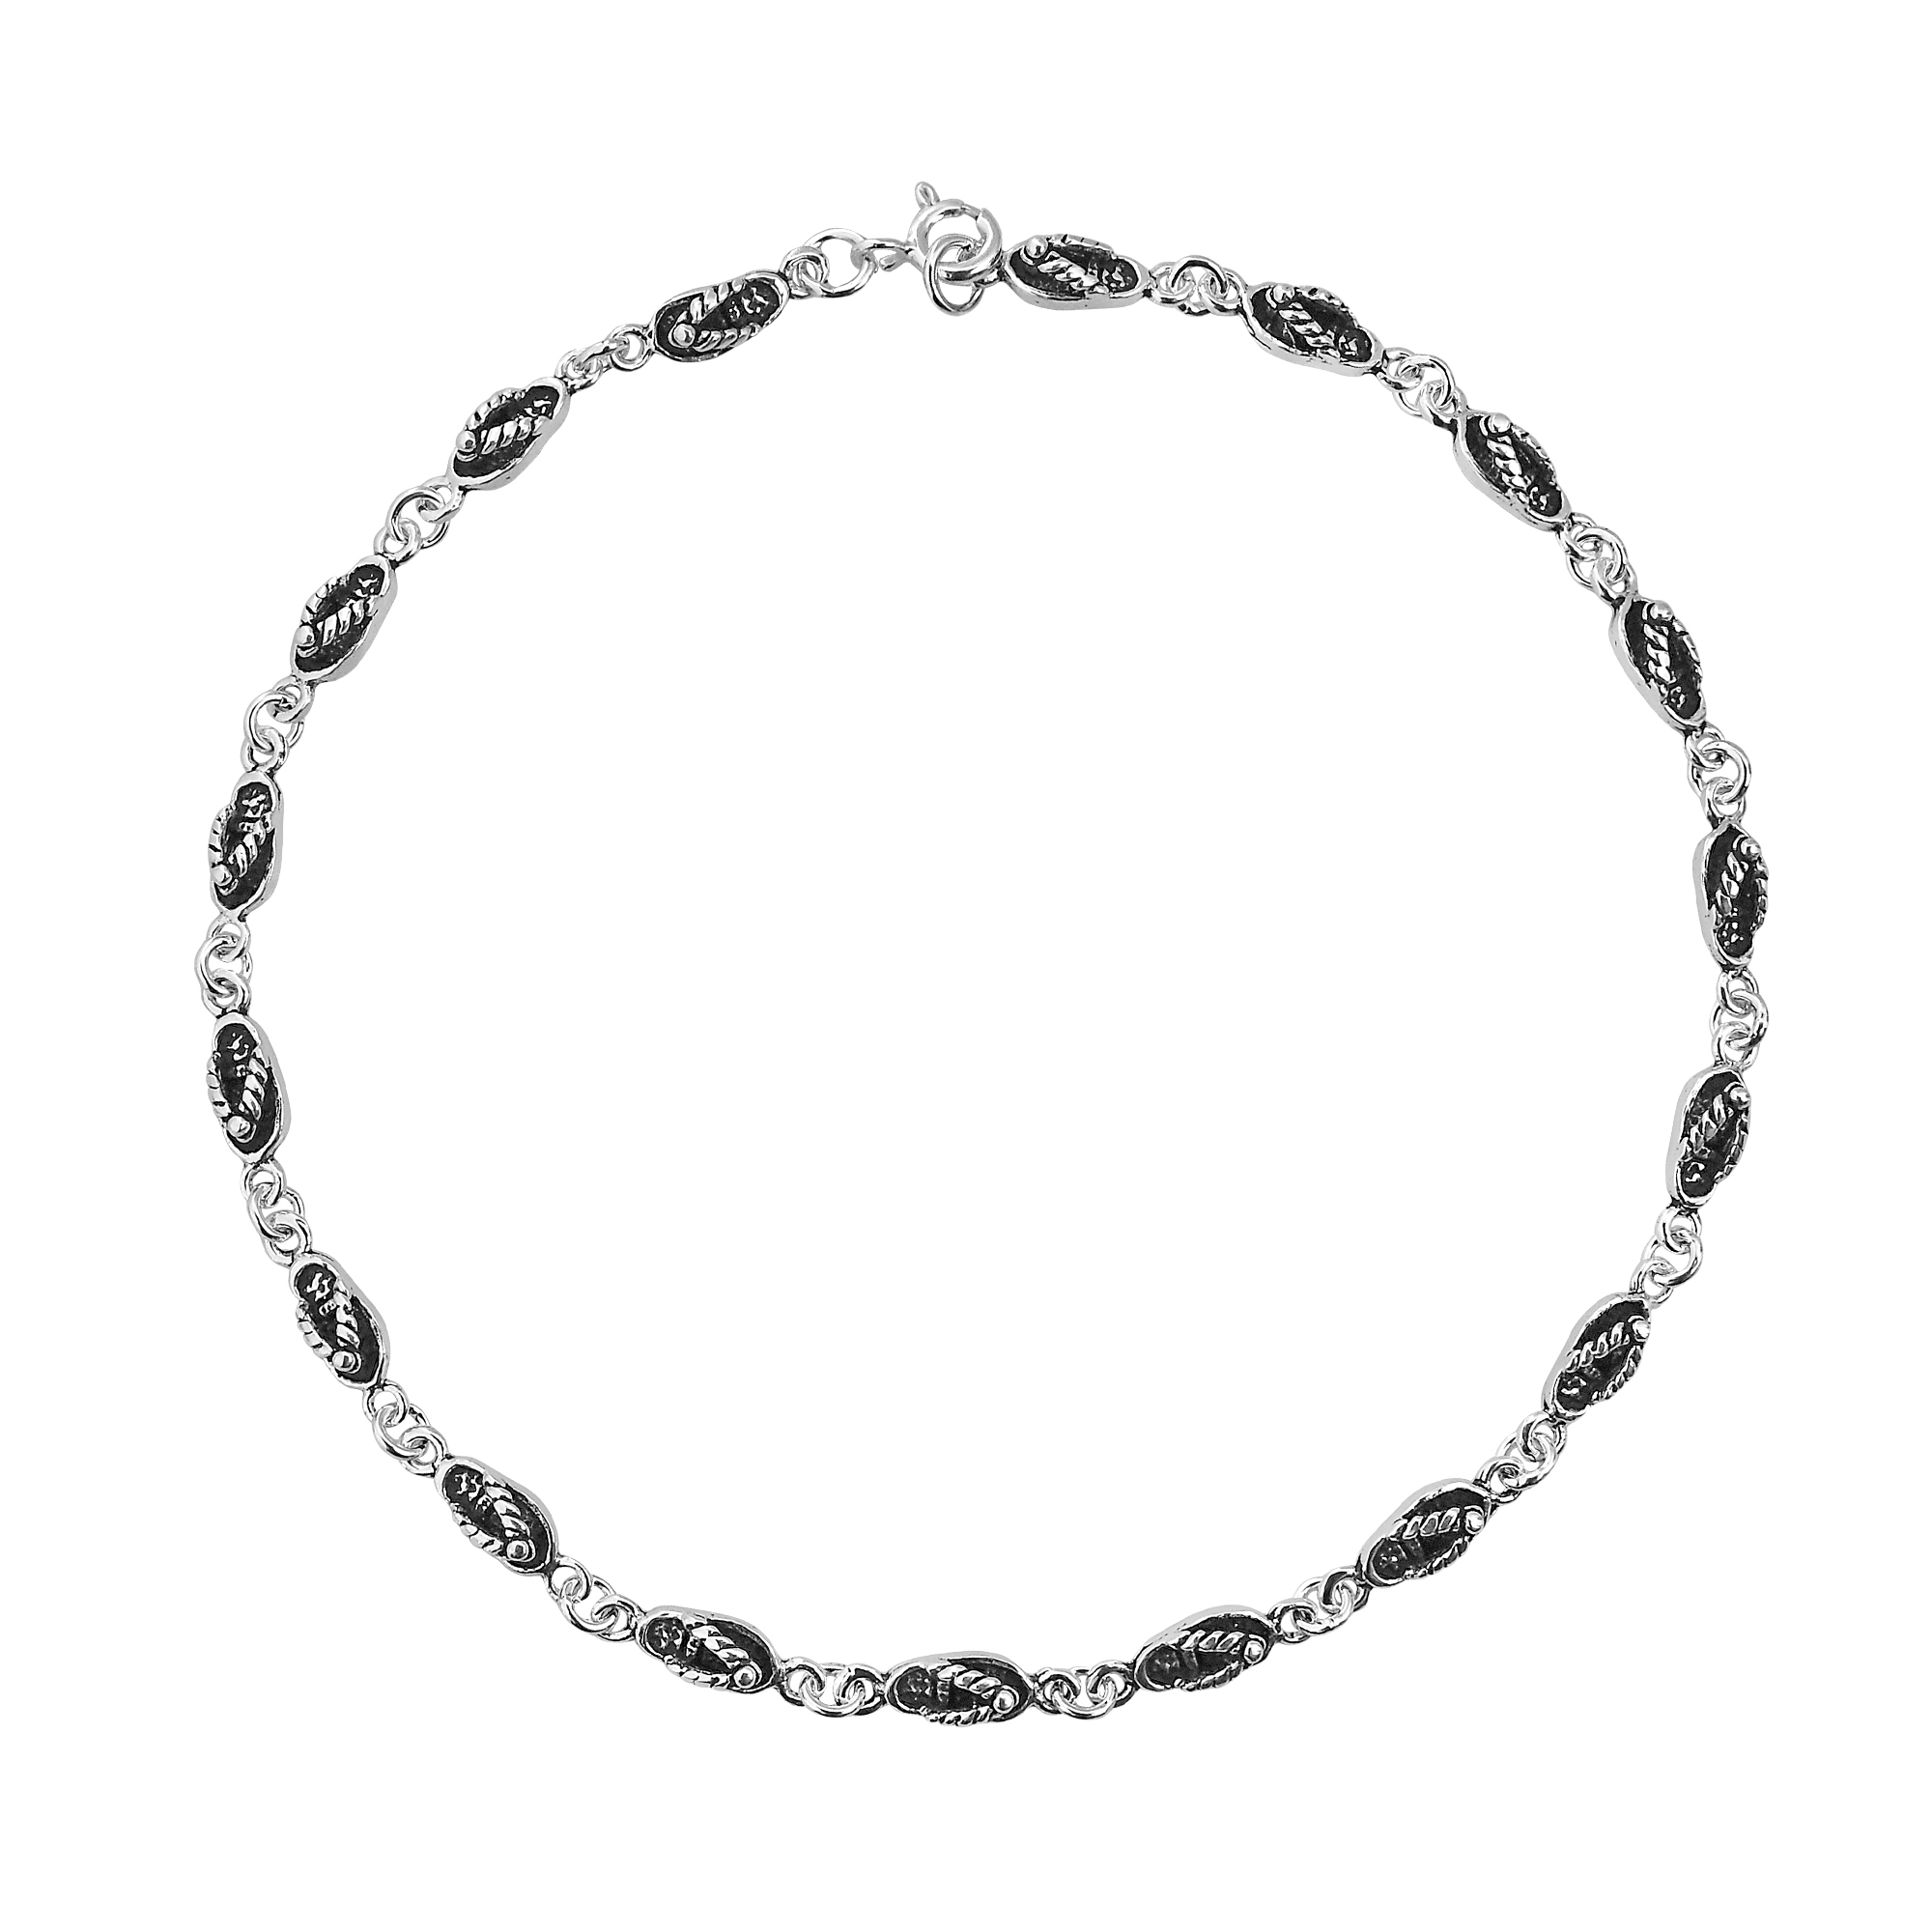 amazon chain silver dp jewelry anklet bracelet italy bling com ankle sterling singapore